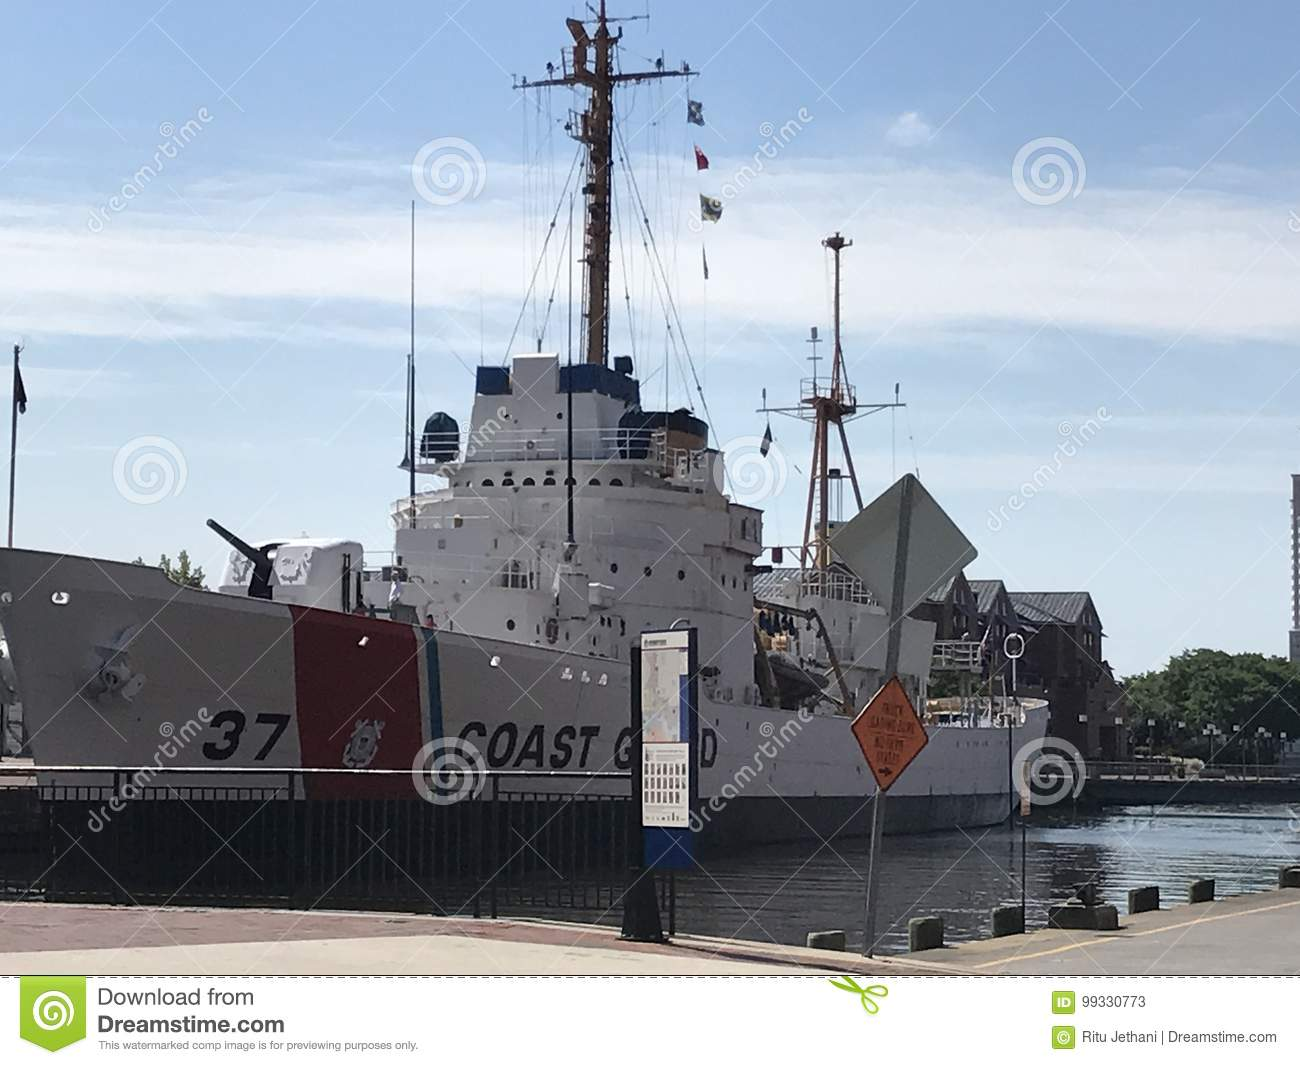 USCGC Taney in Baltimore, Maryland